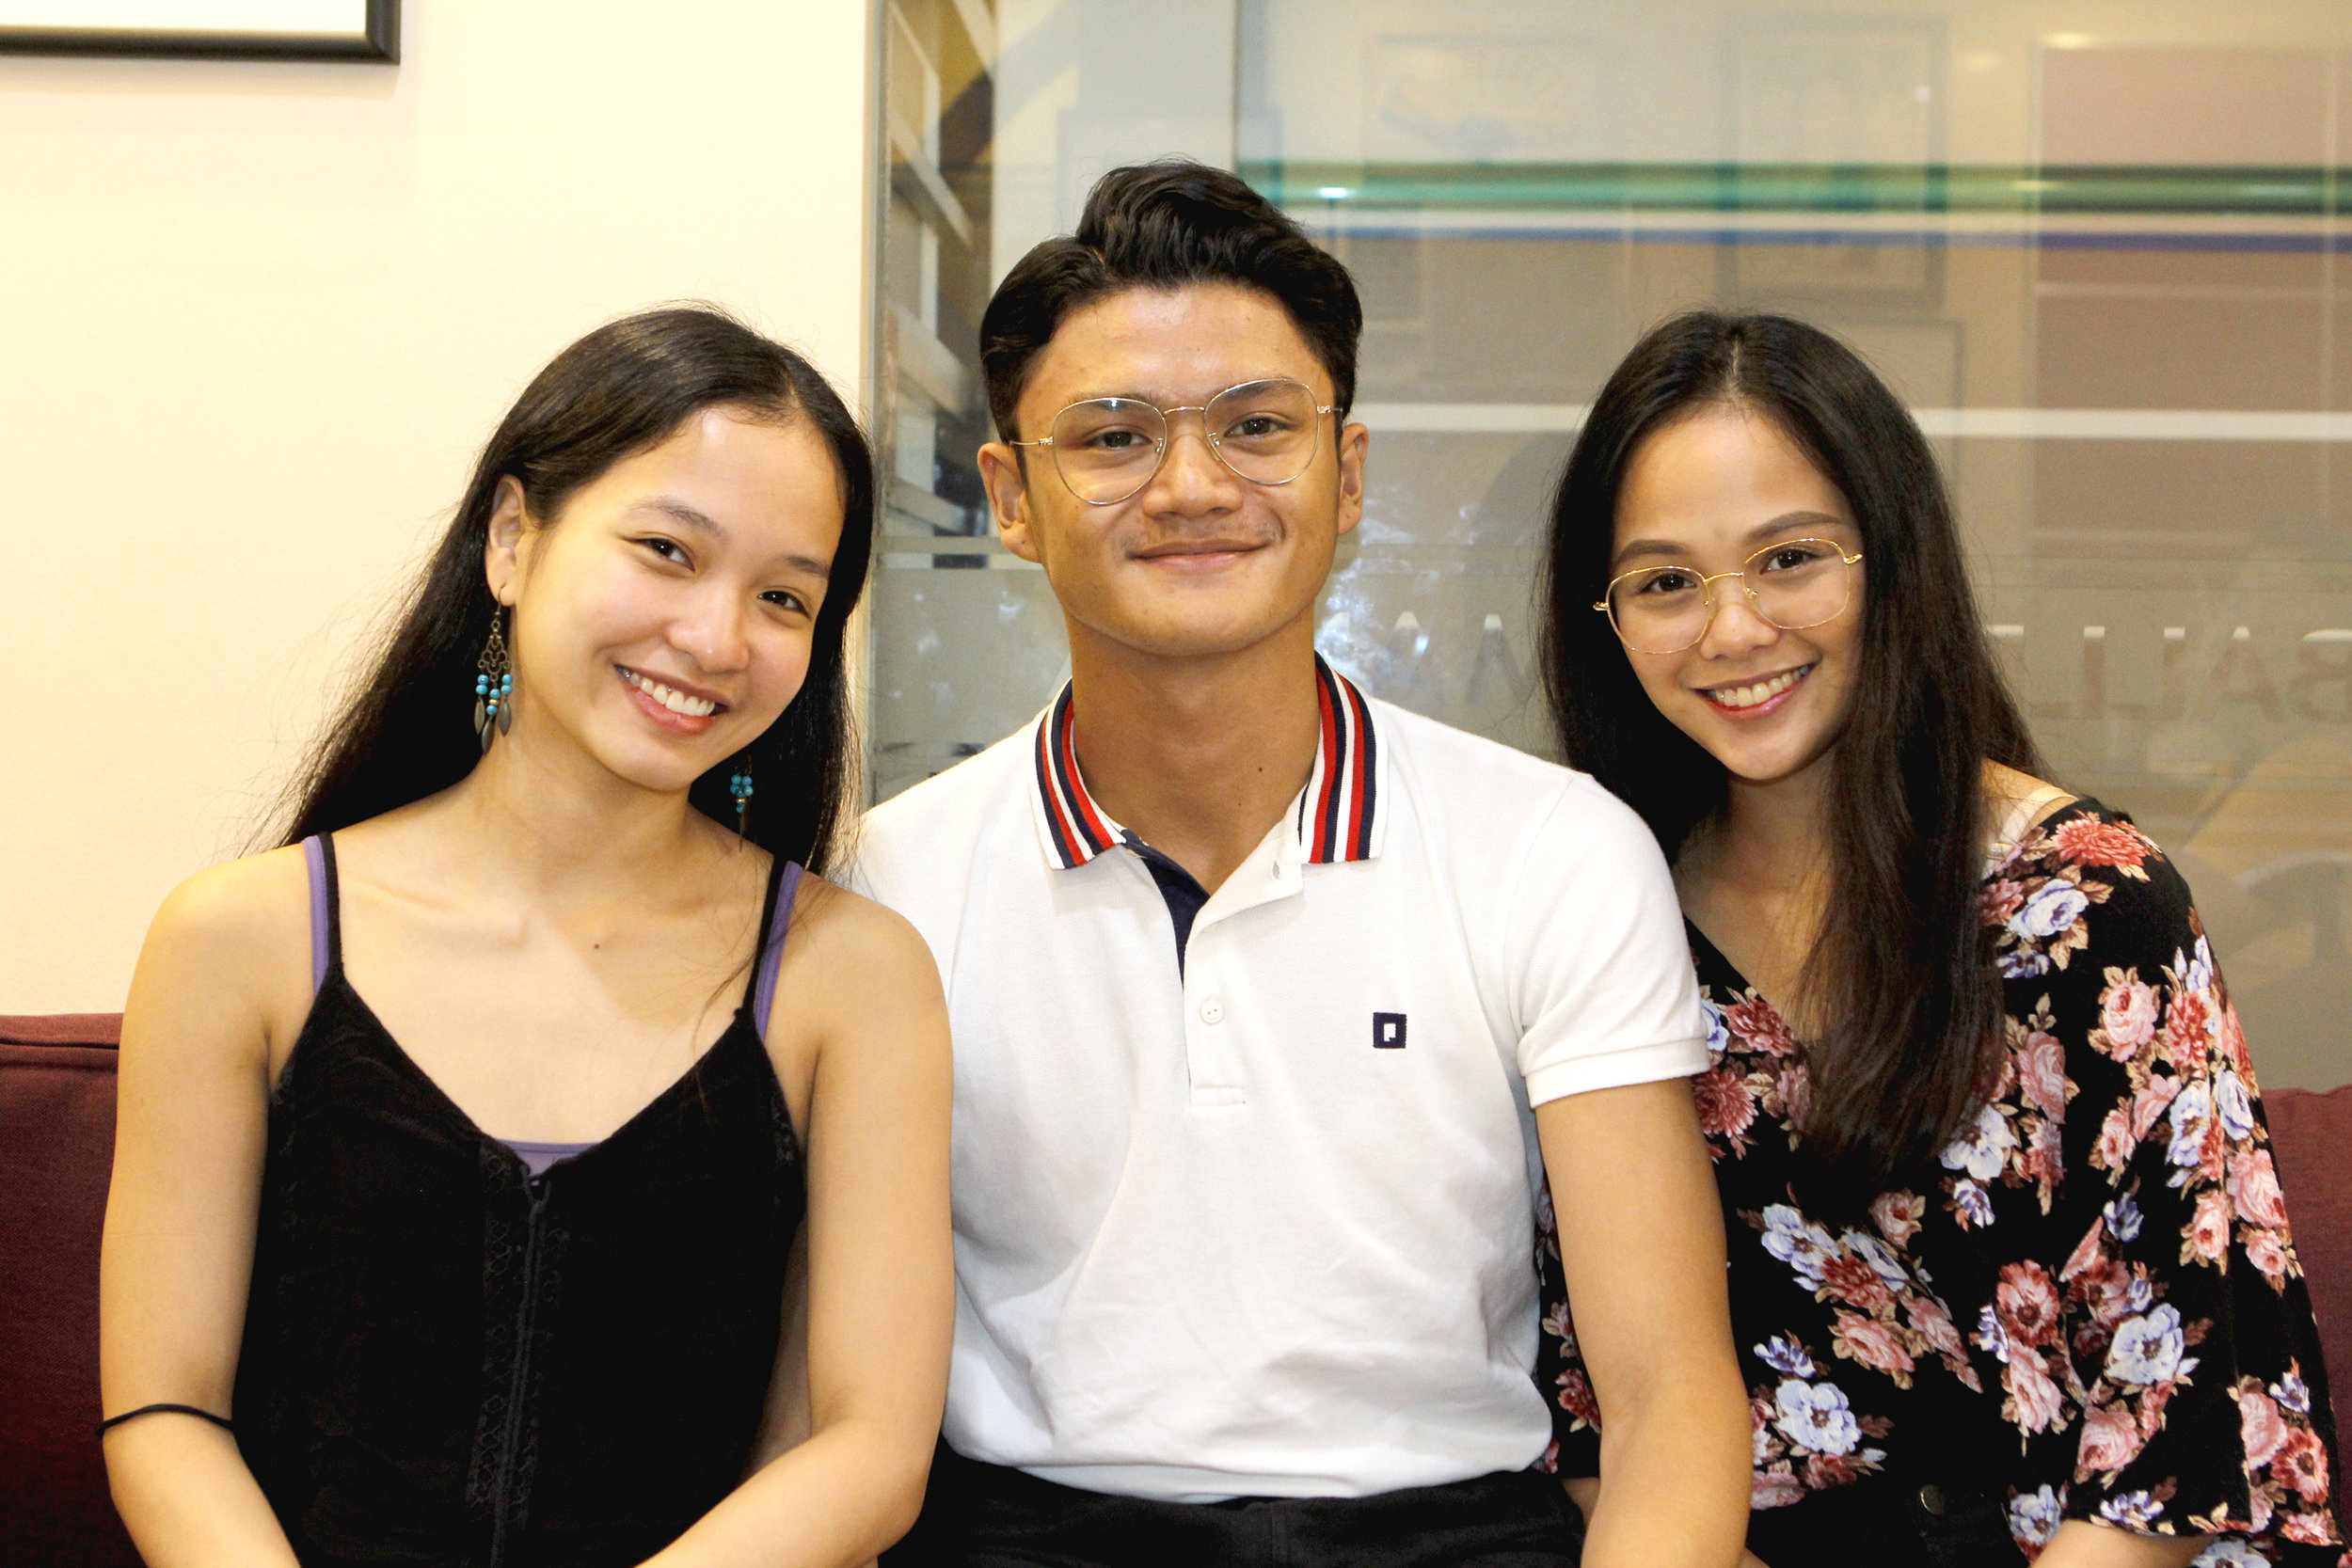 Ballet Manila's newly promoted soloists Jessica Pearl Dames, Joshua Enciso and Rissa May Camaclang are raring for the company's next performance season to begin. Photo by Jimmy Villanueva